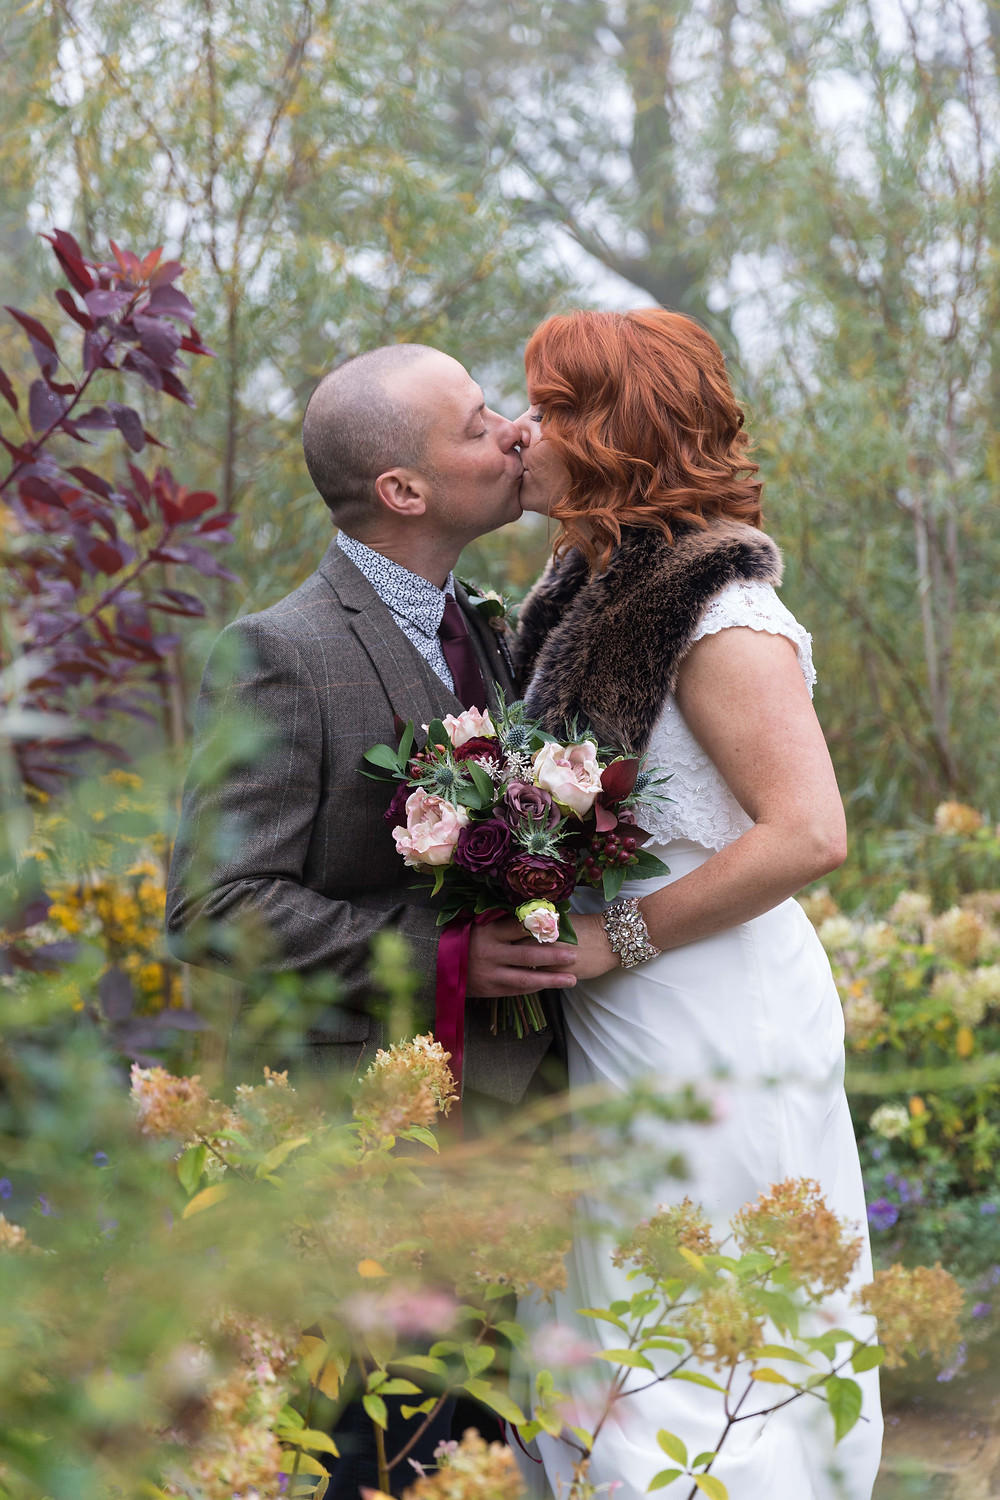 Stunning wedding photography: Bride & Groom in autumnal colours